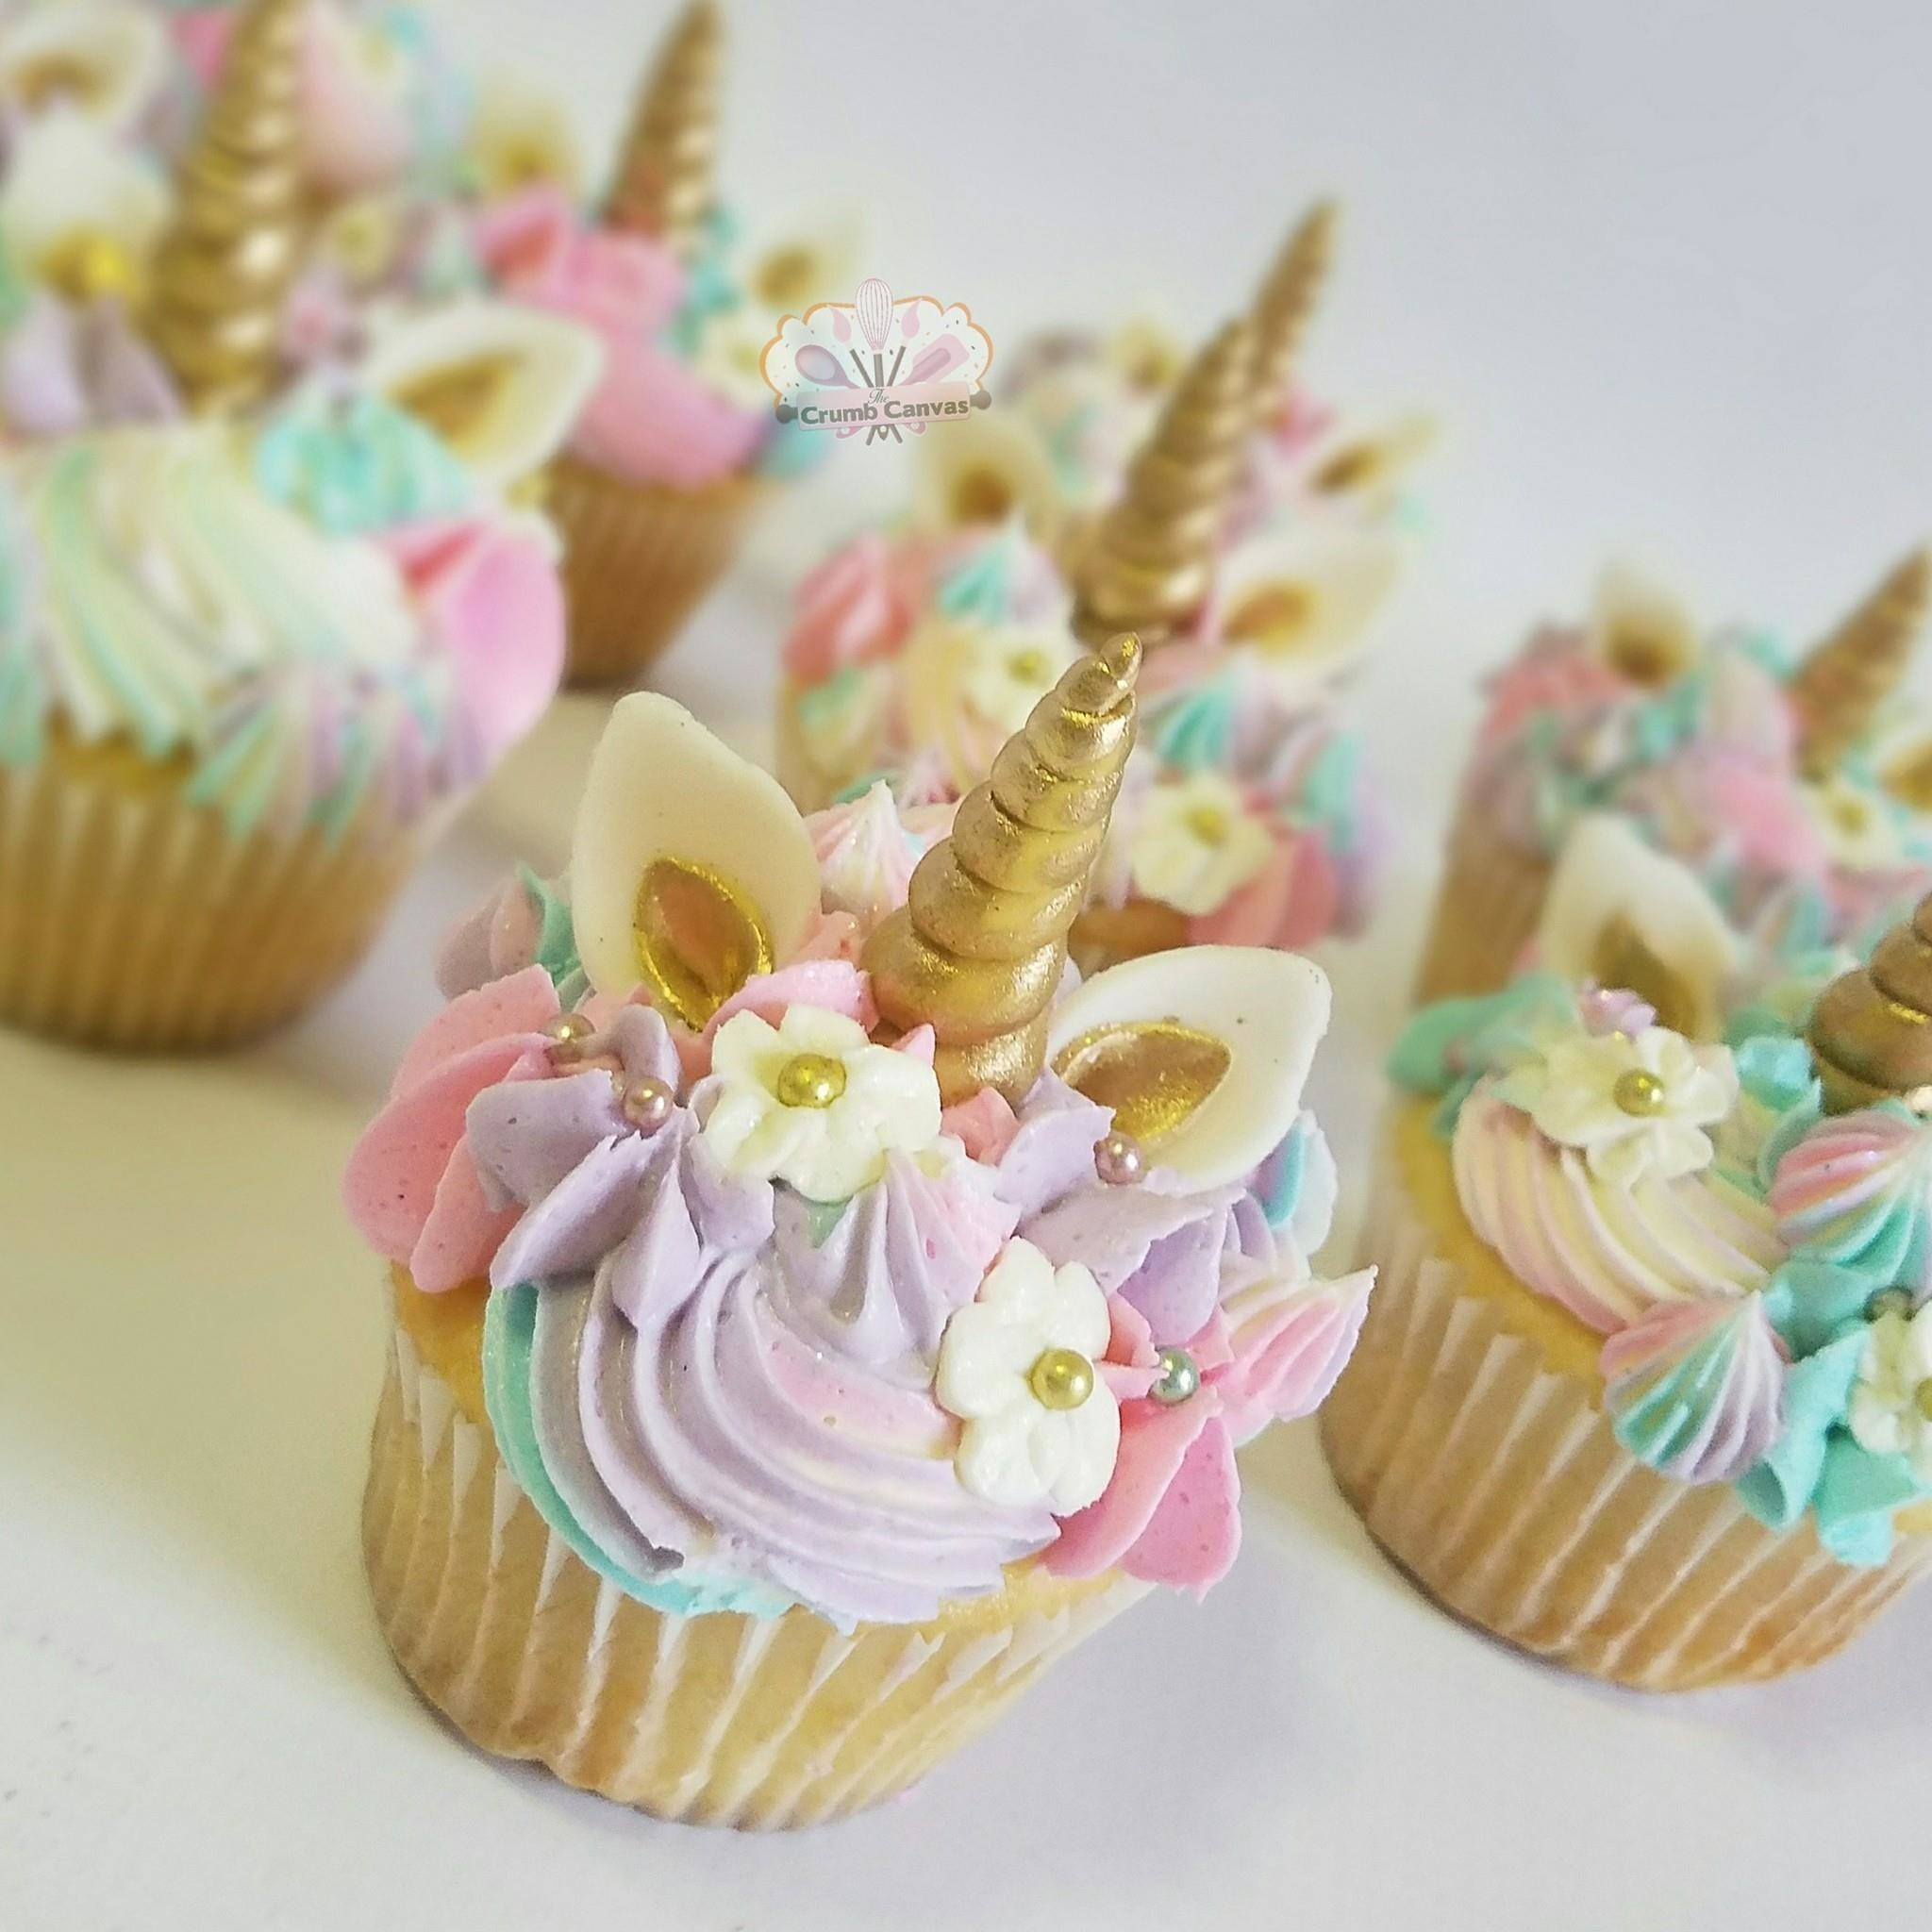 Cute Cupcake Background 183 ① Wallpapertag